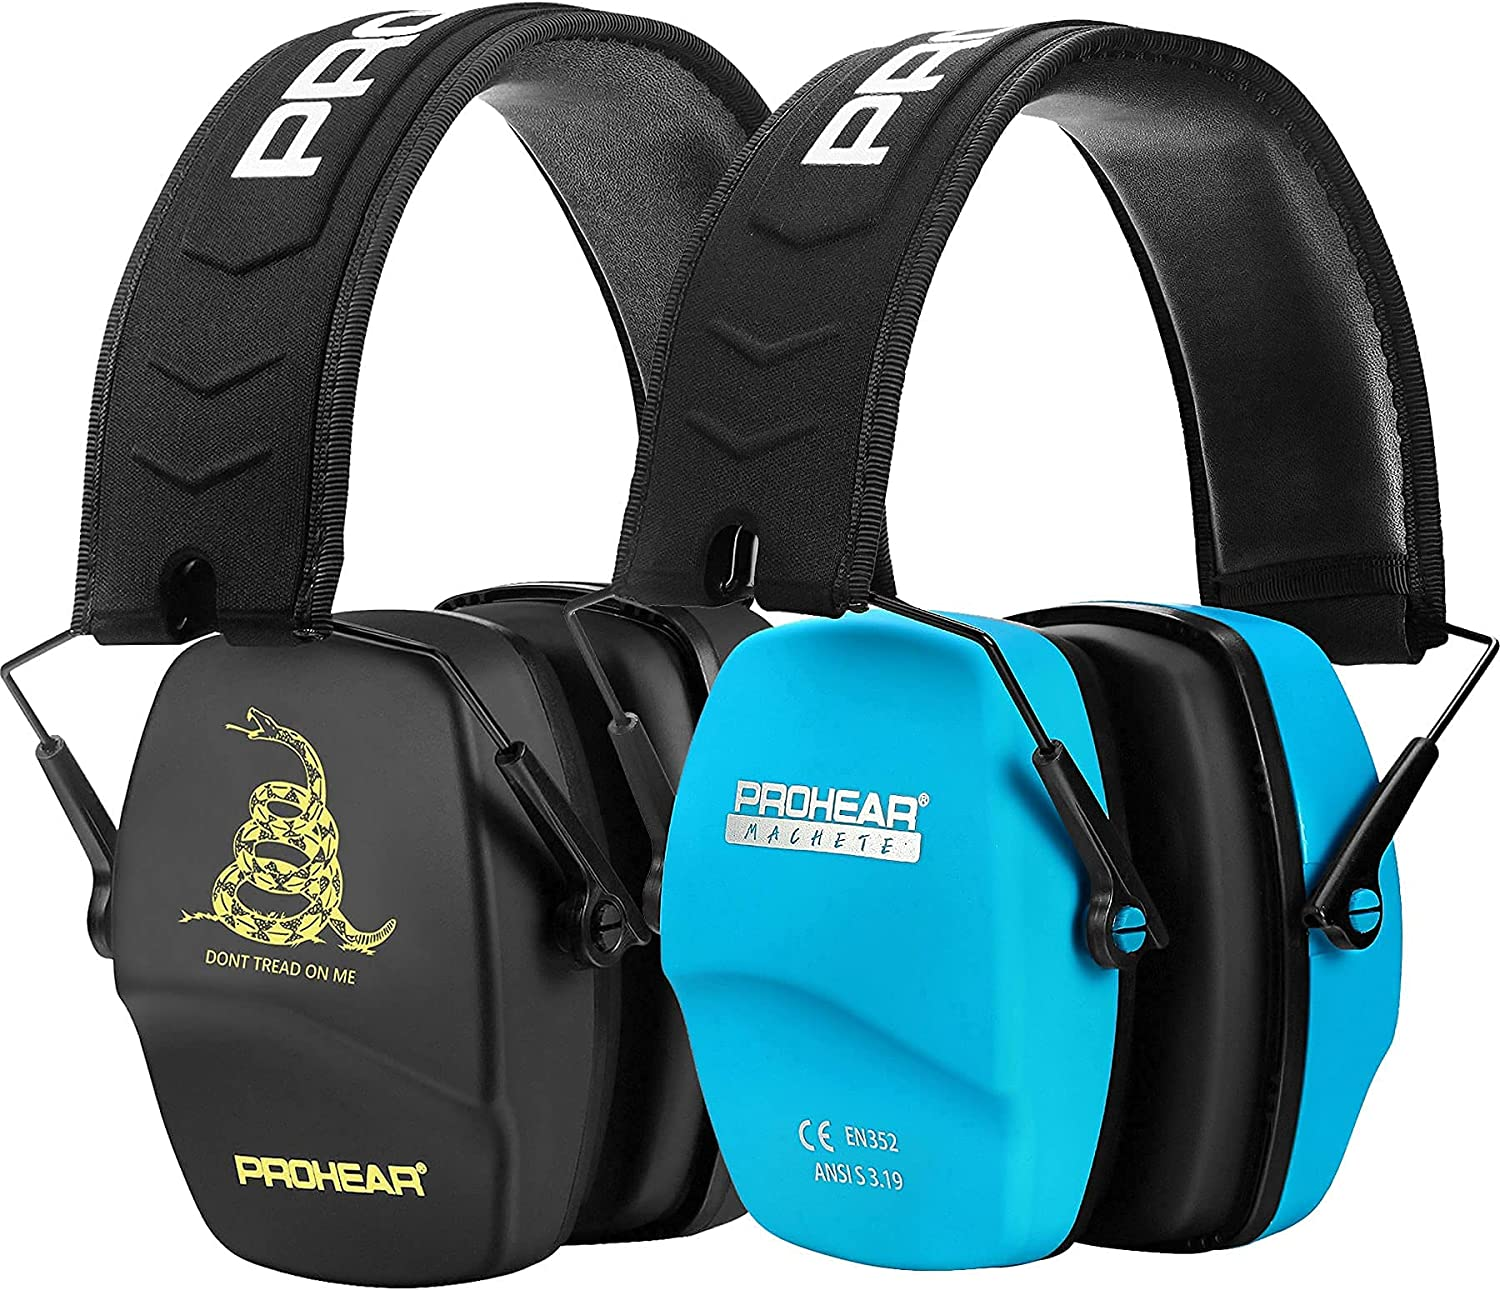 PROHEAR 016 2-Pair 100% quality New Free Shipping warranty Shooting Ear Earmuffs Safety NRR Protection